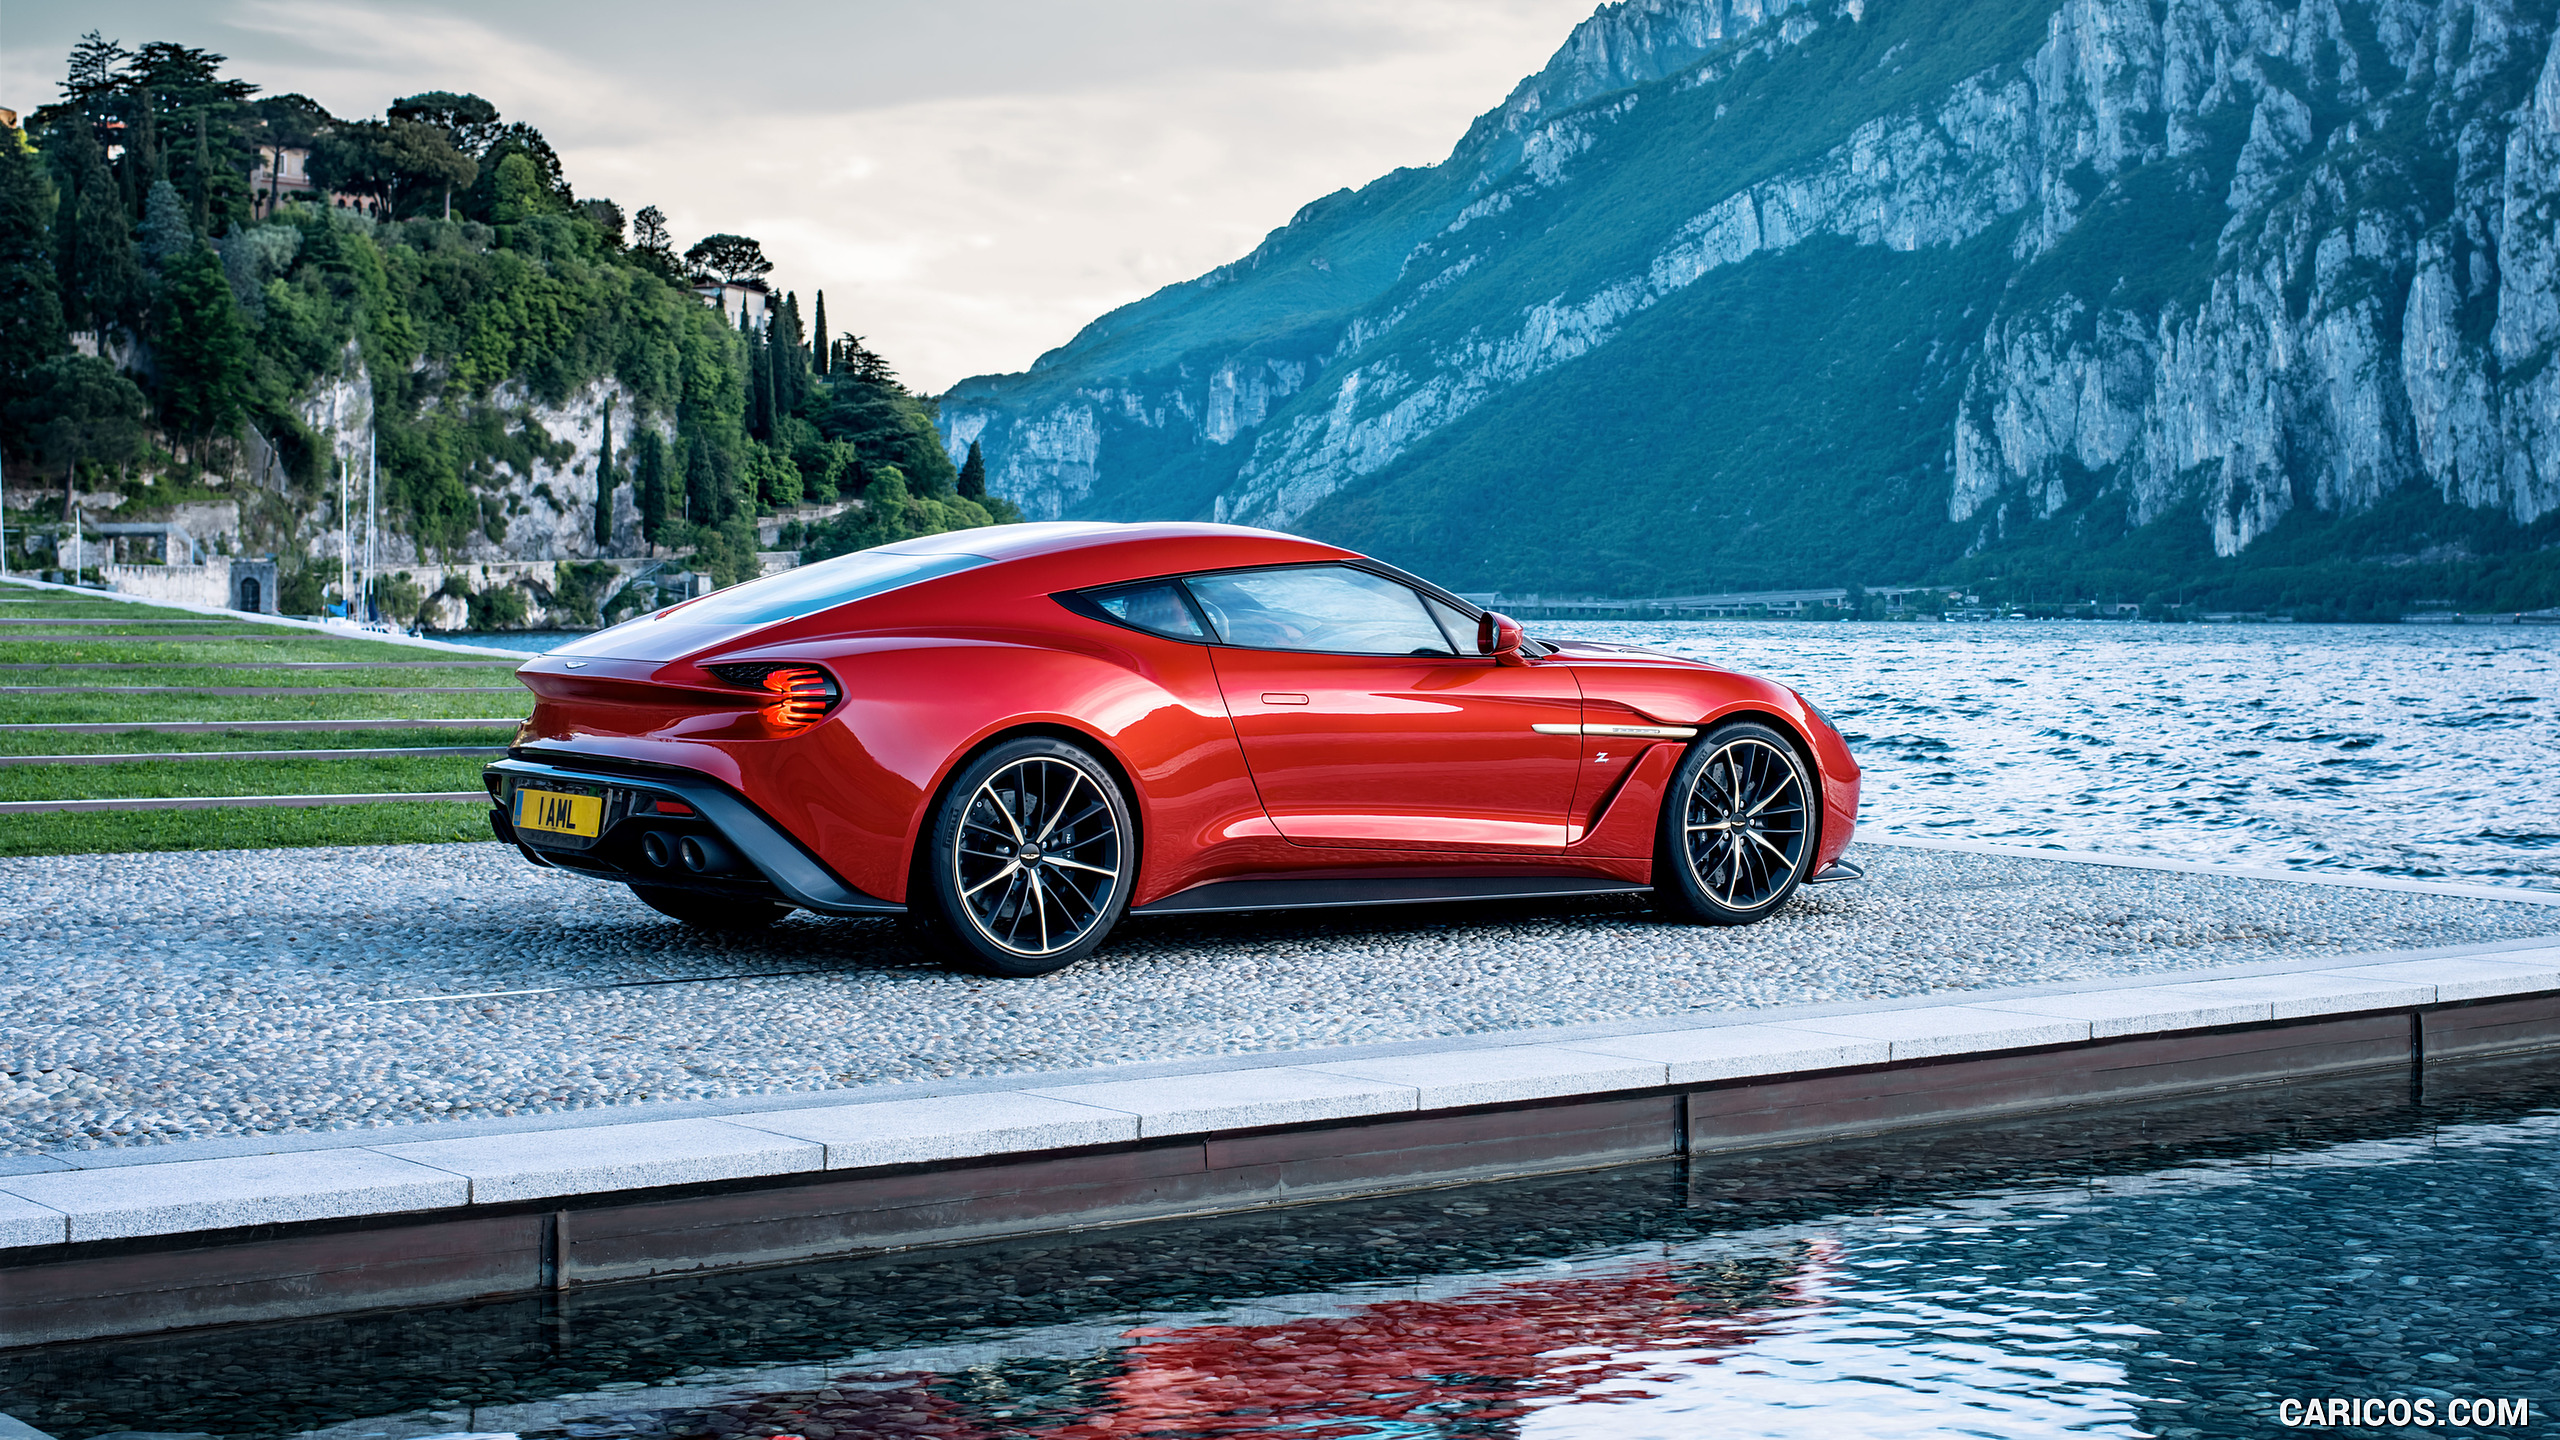 2016 Aston Martin Vanquish Zagato Concept   Side HD Wallpaper 19 2560x1440